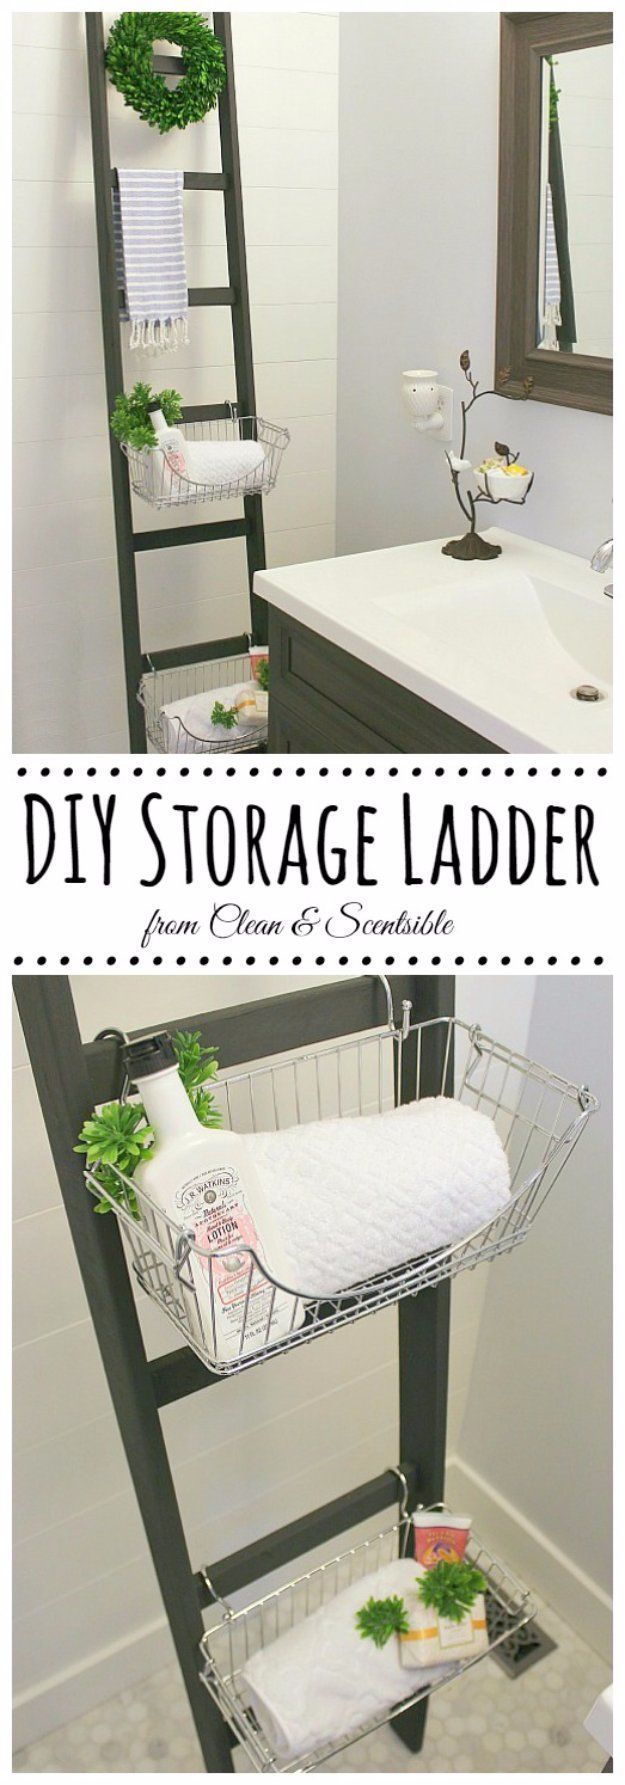 DIY Badezimmer Dekor Ideen – DIY Bad Speicherleiter – Cool Do It Yourself